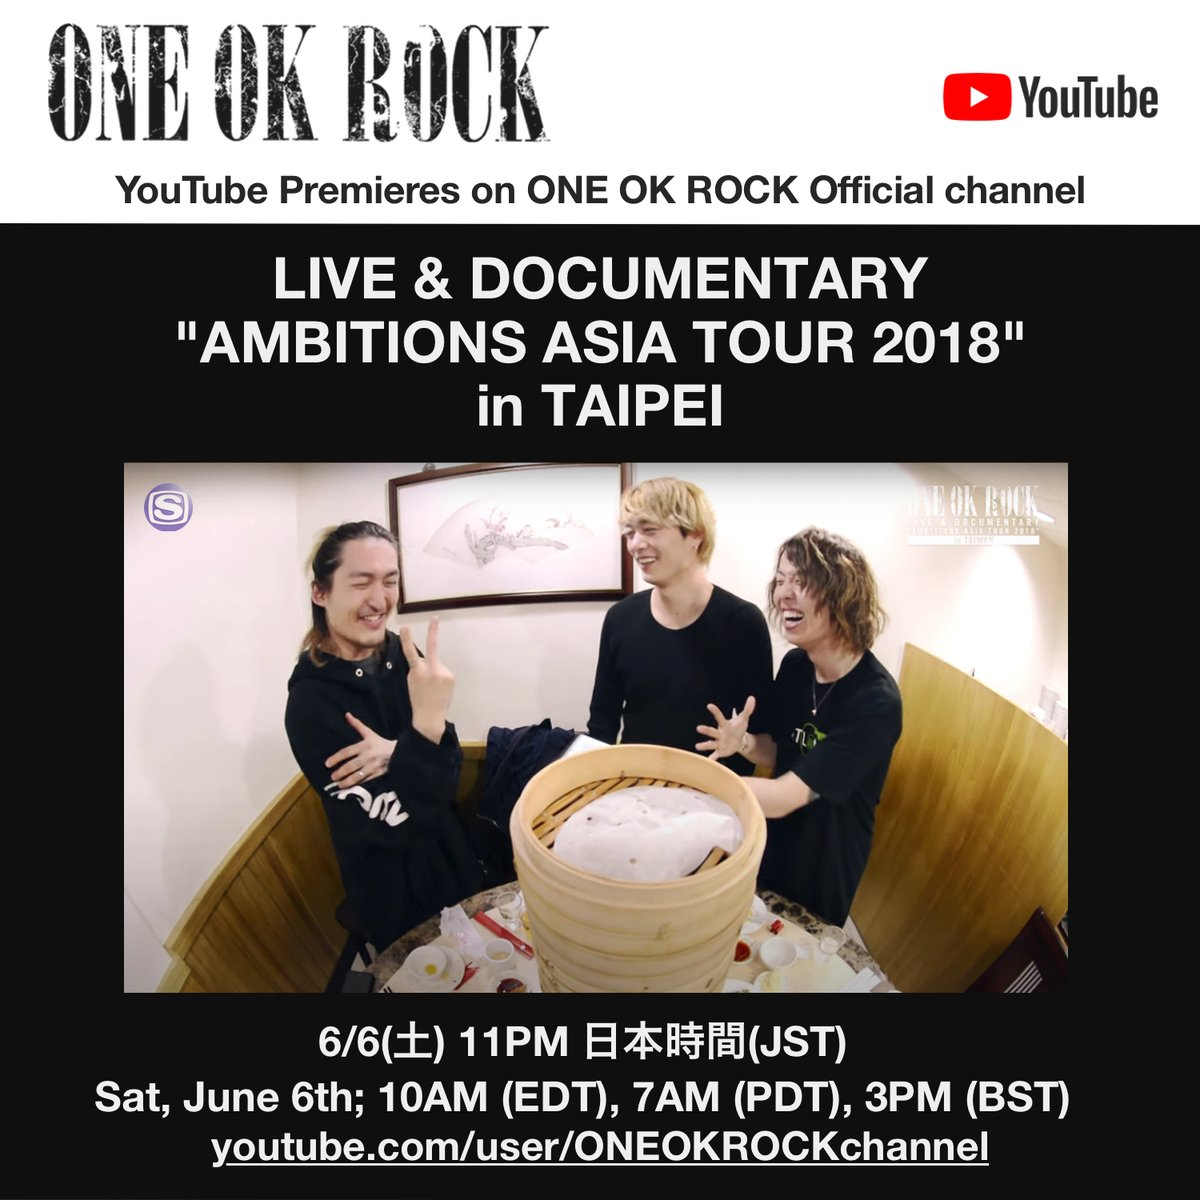 Announcing the worldwide release of our 2018 Outdoor Live & Documentary in Taipei streamed on YouTube Premieres. youtube.com/user/ONEOKROCK… #ONEOKROCK